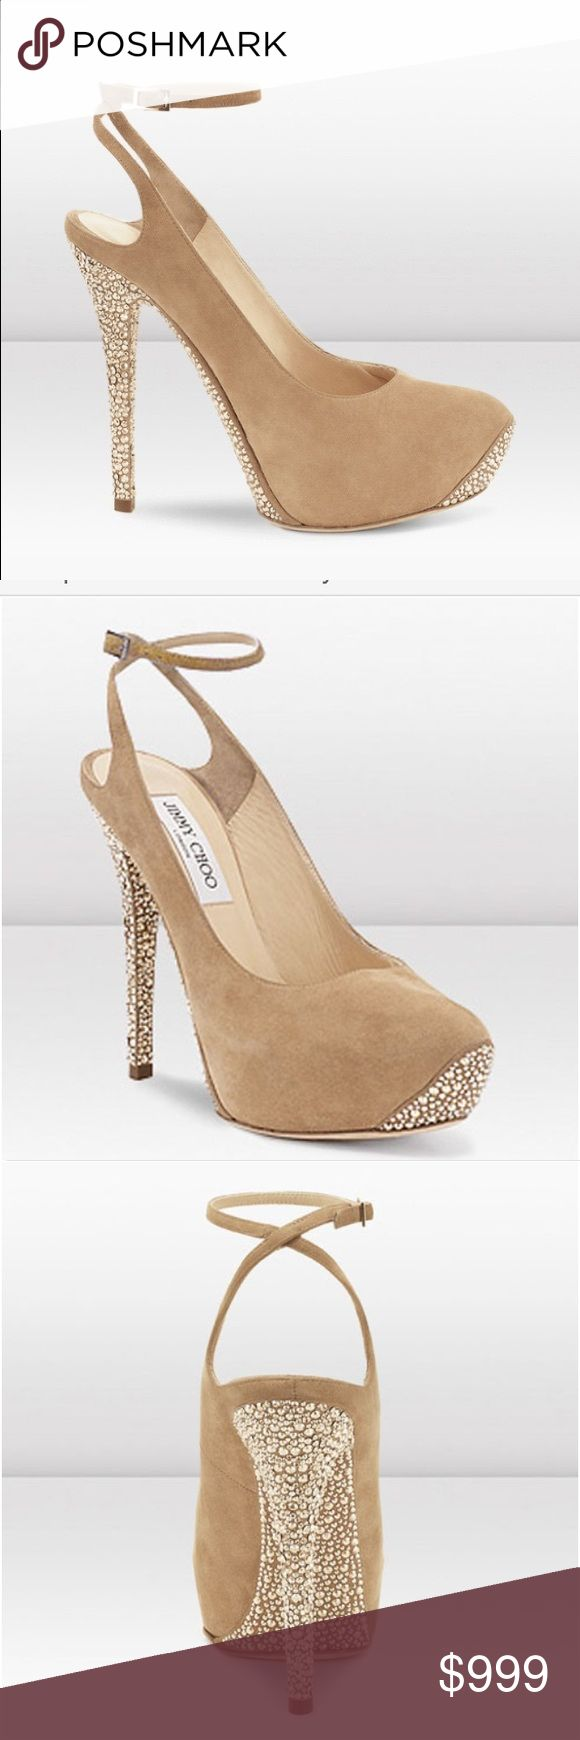 Jimmy Choo Tame Camel Suede Platforms Pumps Jimmy Choo Tame Camel Suede Platforms Pumps With Swarovski Crystal. Jimmy Choo consistently offers must-have heels for the glamorous woman. This label has grown into the glossiest of shoes and accessories brands.This shoe is as pretty on bottom as it is on top! Jimmy Choo's Suede Crystal-Coated Ankle Strap Platform Pumps  are new for fall. For a touch of Hollywood glamour, try this suede platform silhouette.size 39 but run small (fit for 8) used…